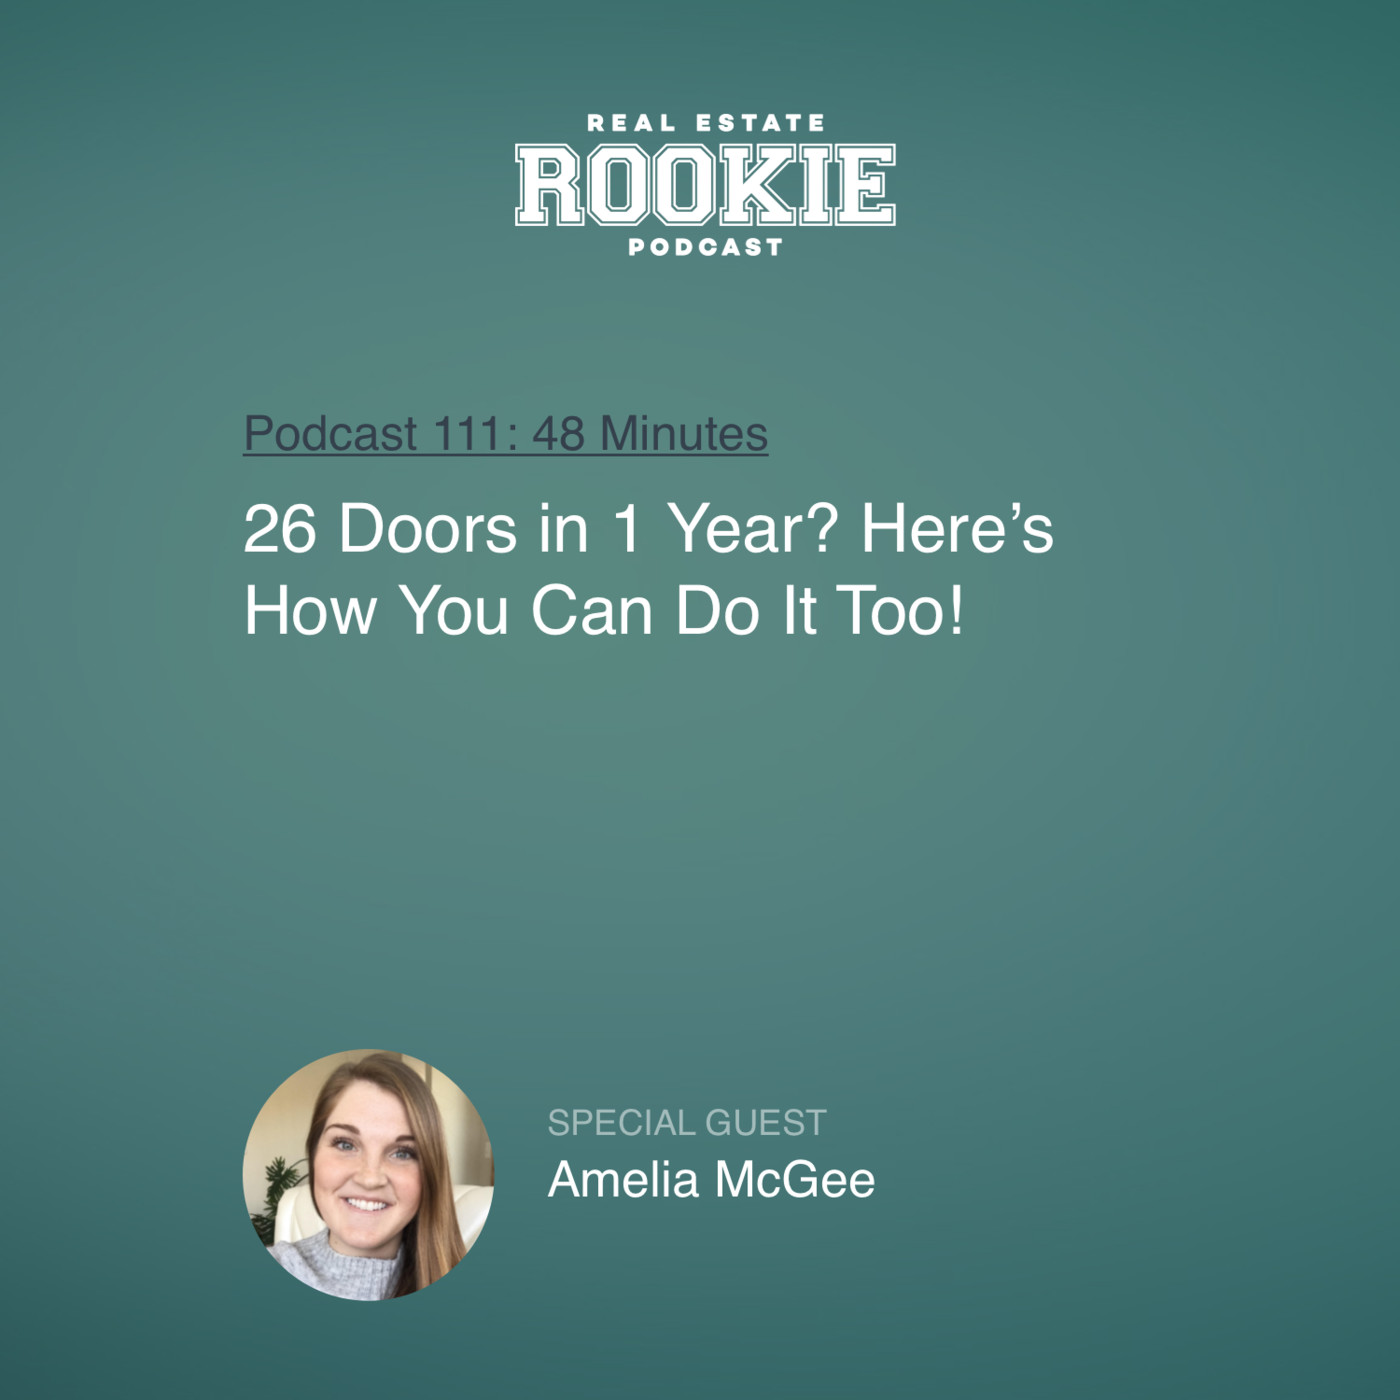 26 Doors in 1 Year? Here's How You Can Do It Too!